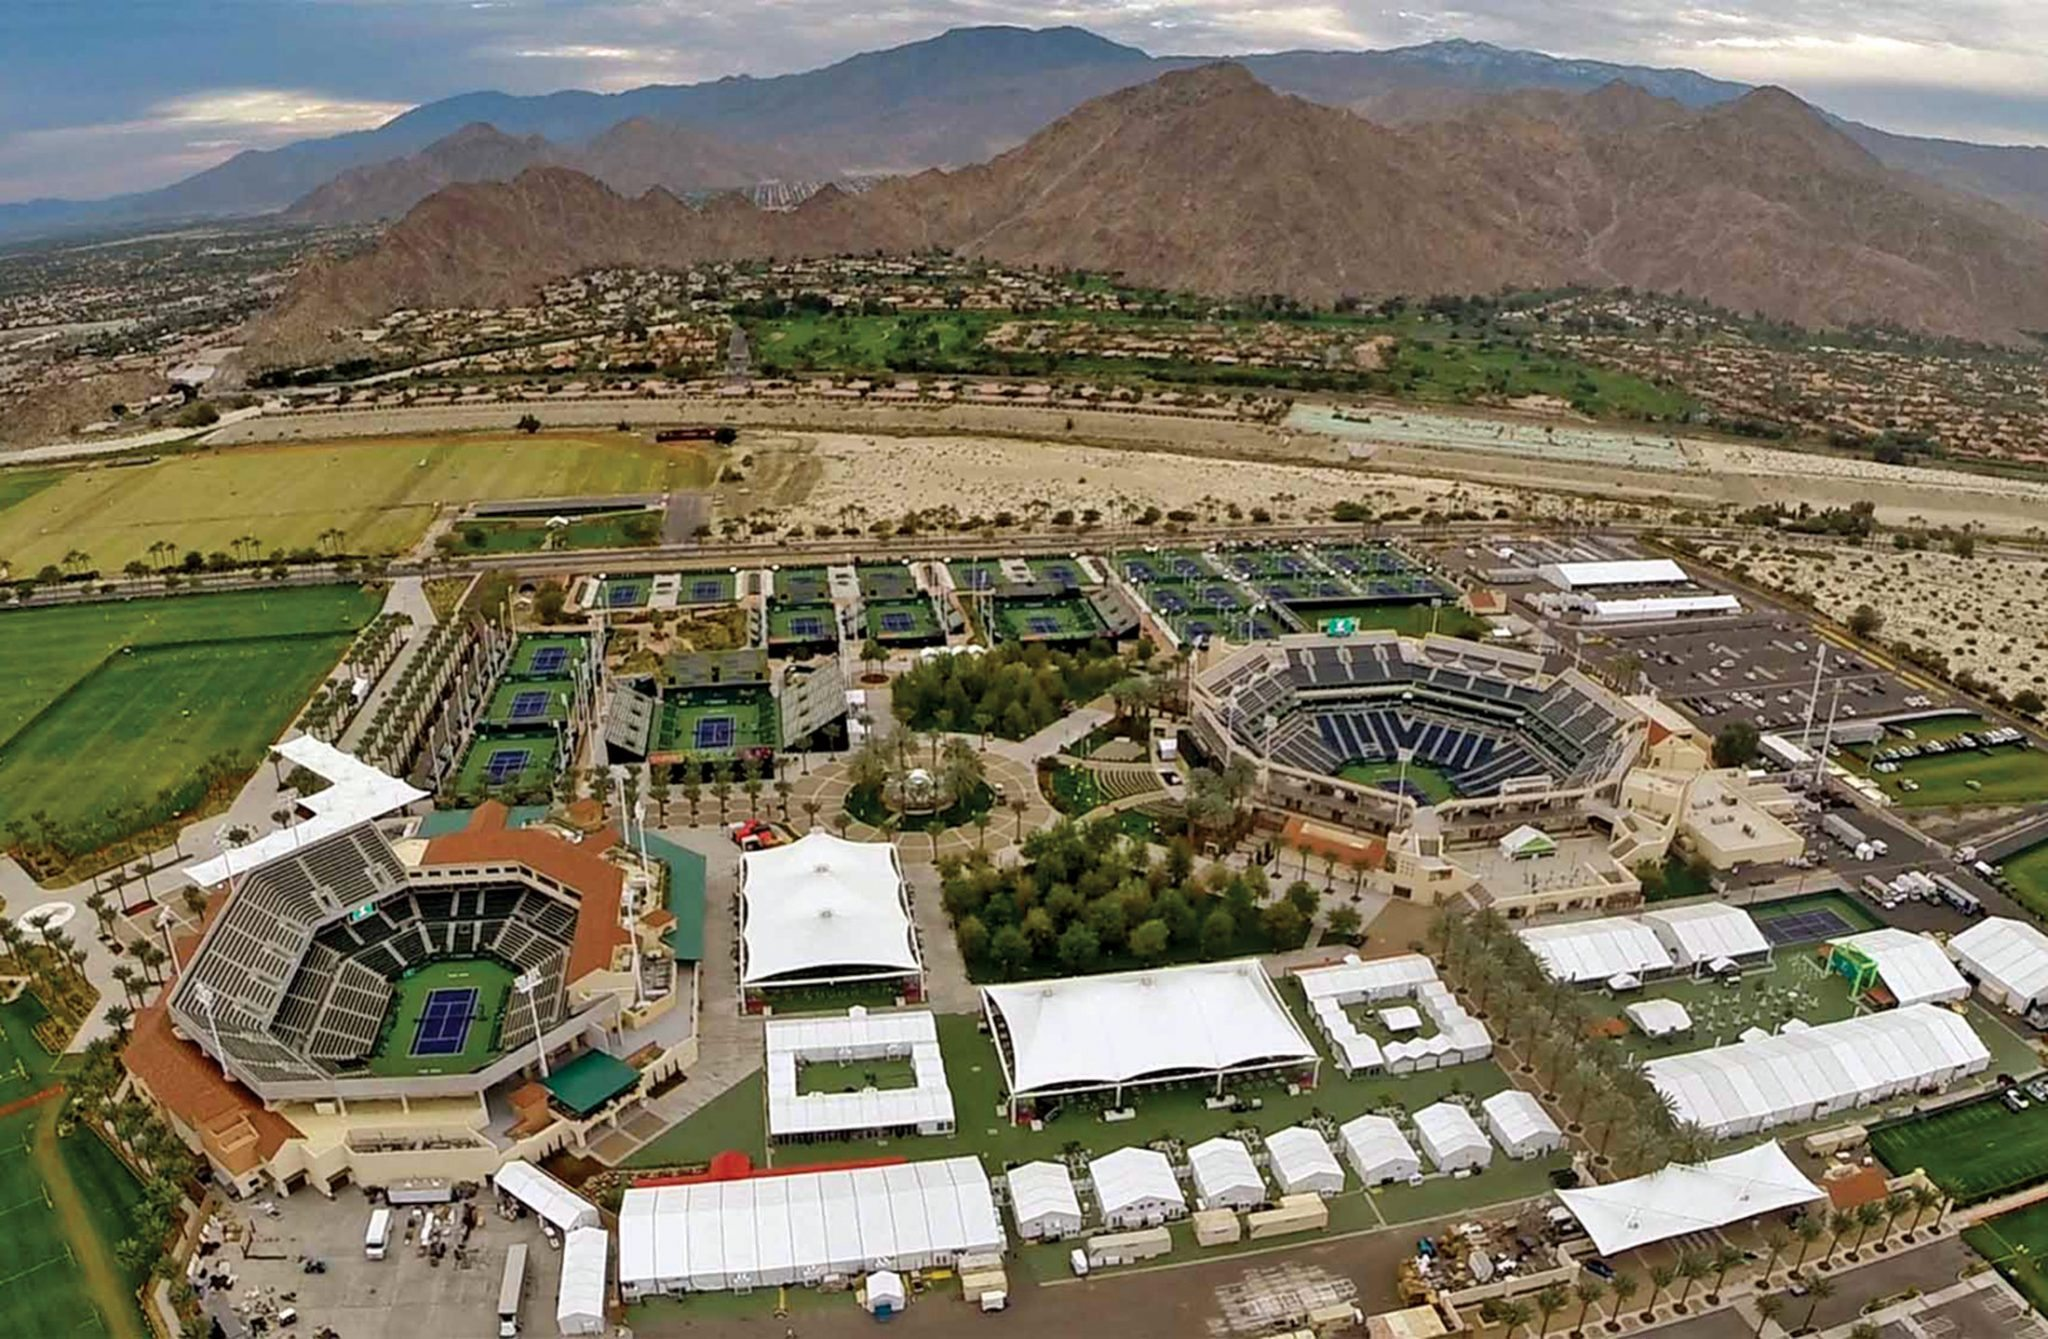 Bloomberg Business On Larry Ellison Indian Wells Tennis Gardens Watkins Landmark Construction